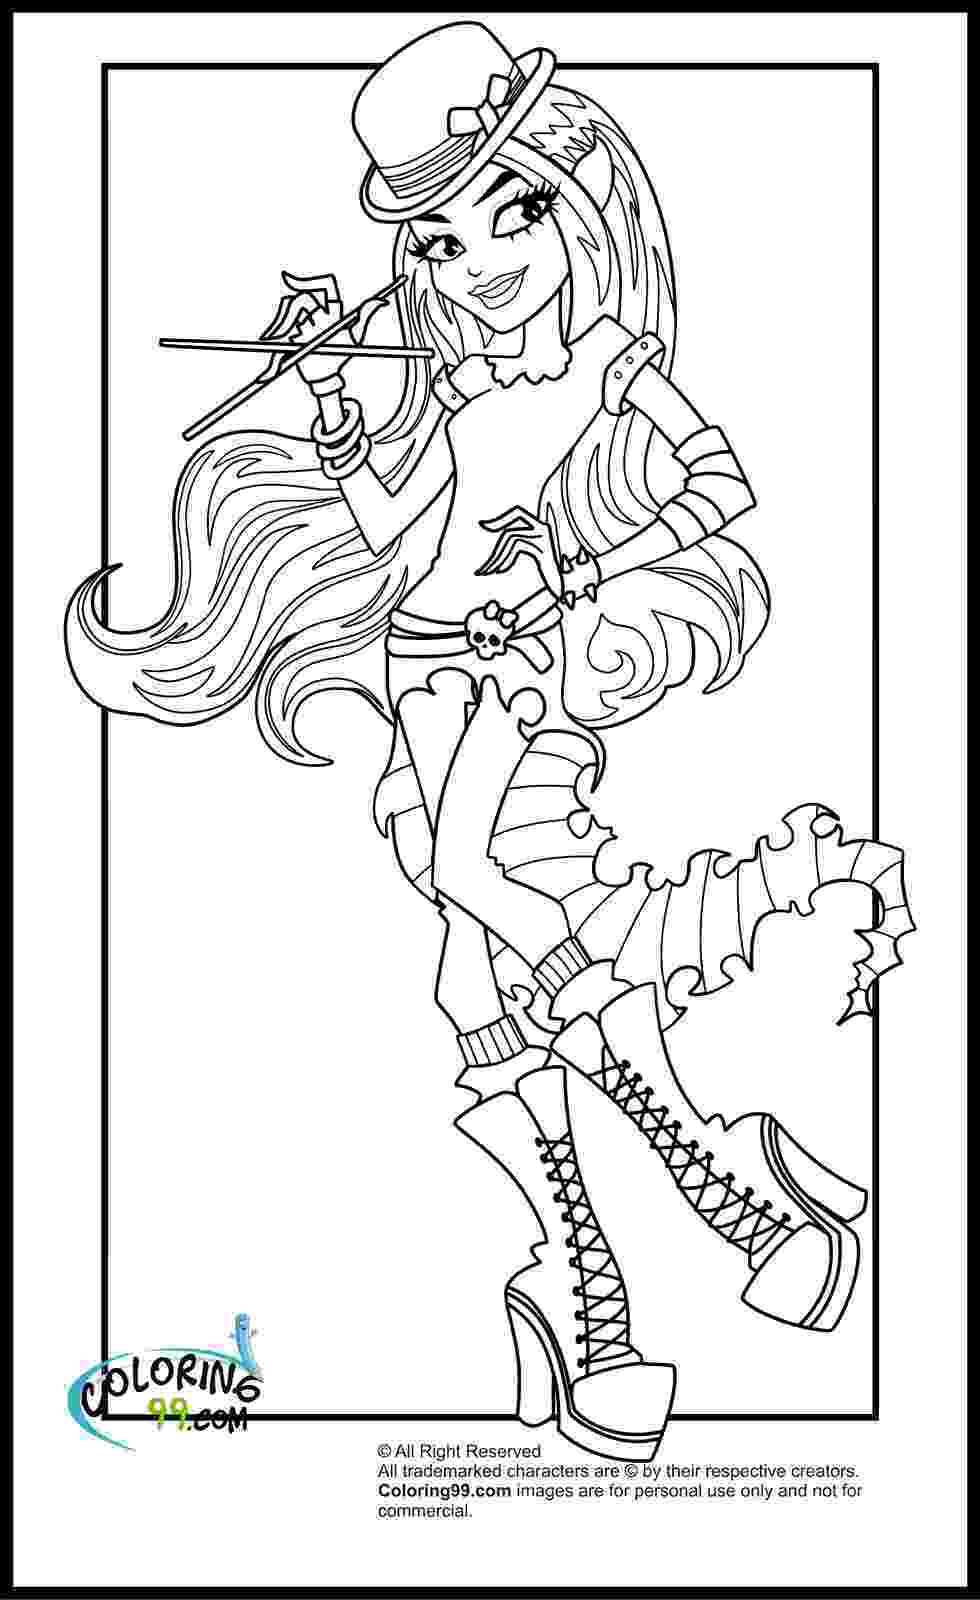 monster high coloring pages for free monster high coloring pages team colors coloring monster for free pages high